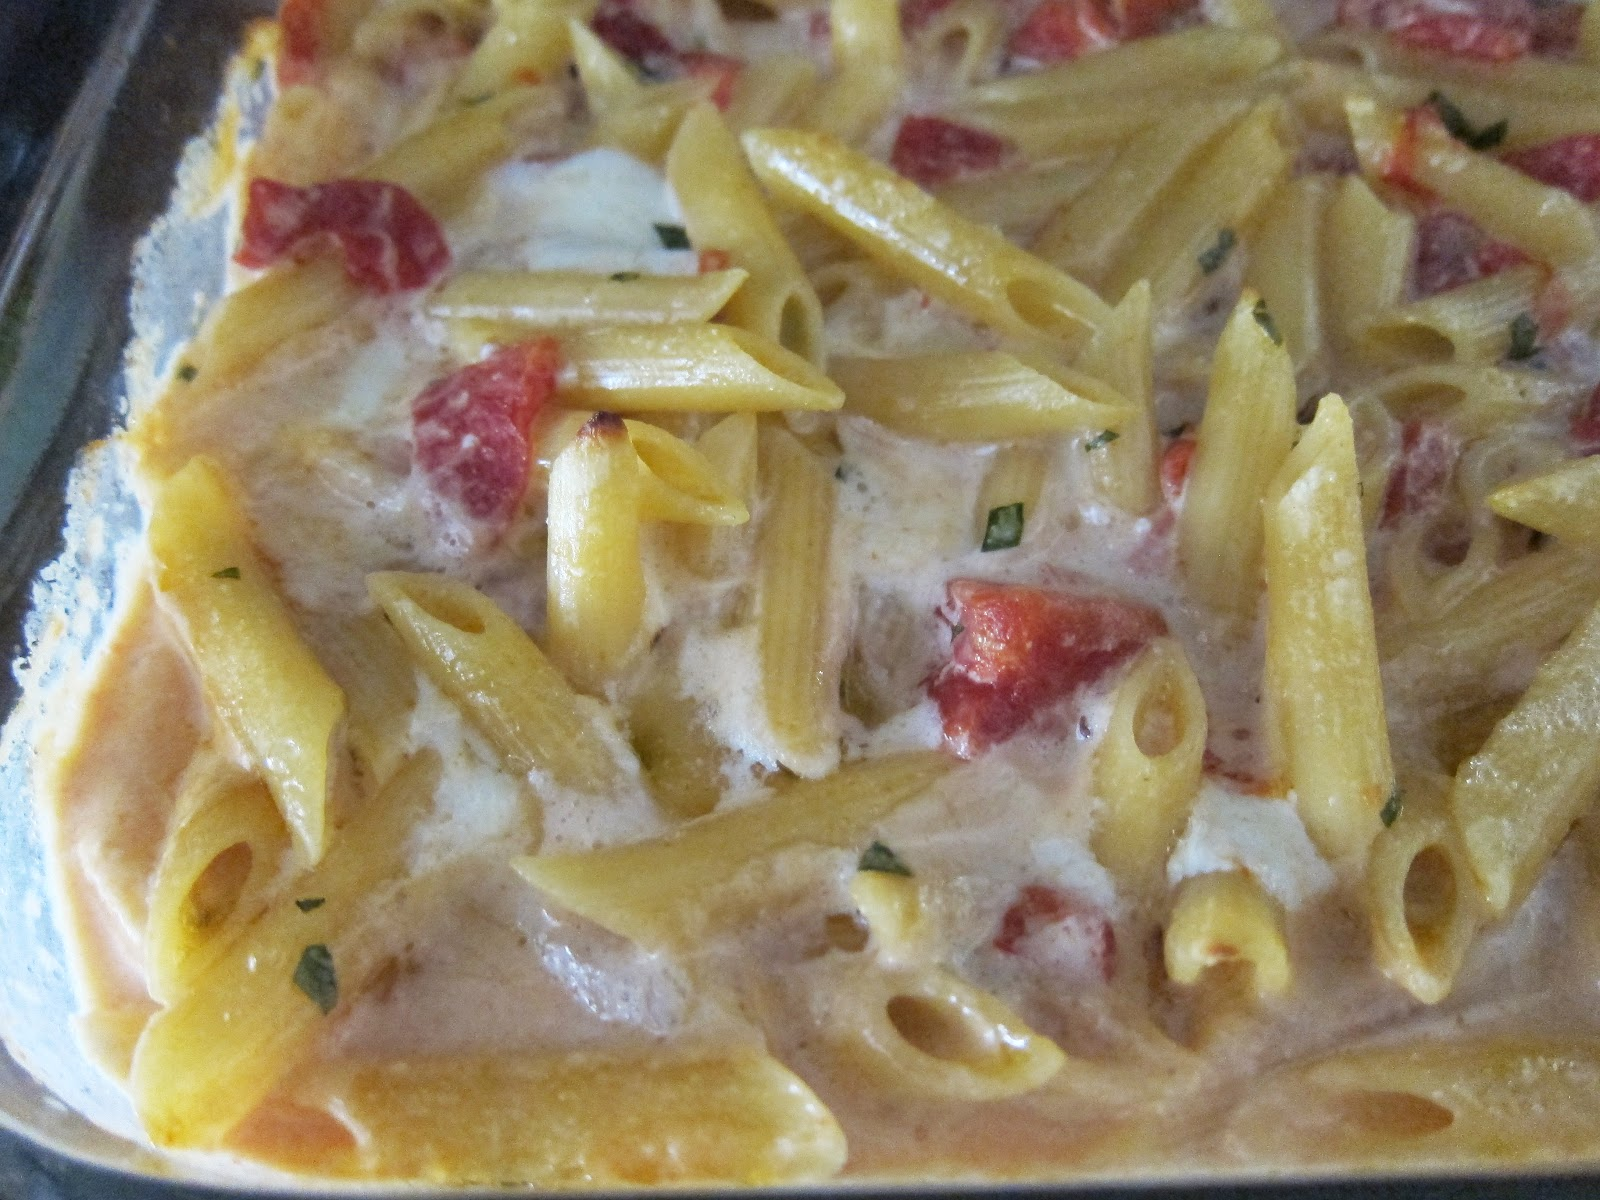 Al+Forno%27s+penne+with+tomatoes+cream+and+five+cheeses.JPG